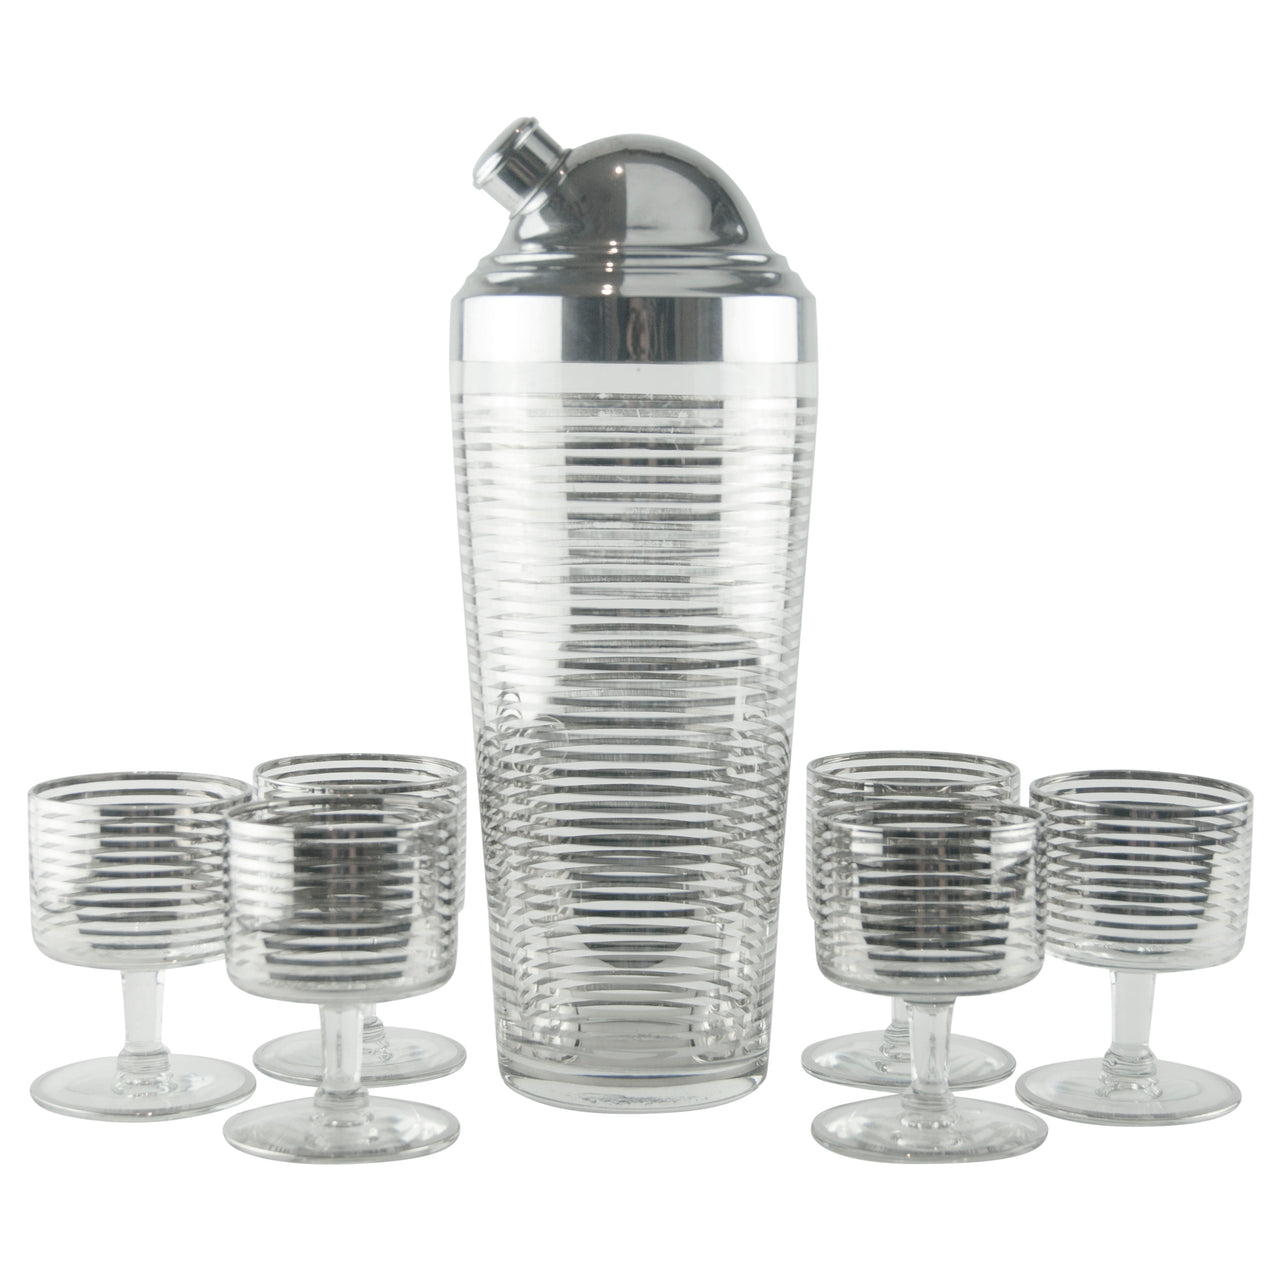 Silver Striped Cocktail Shaker Set | The Hour Shop Vintage Deco